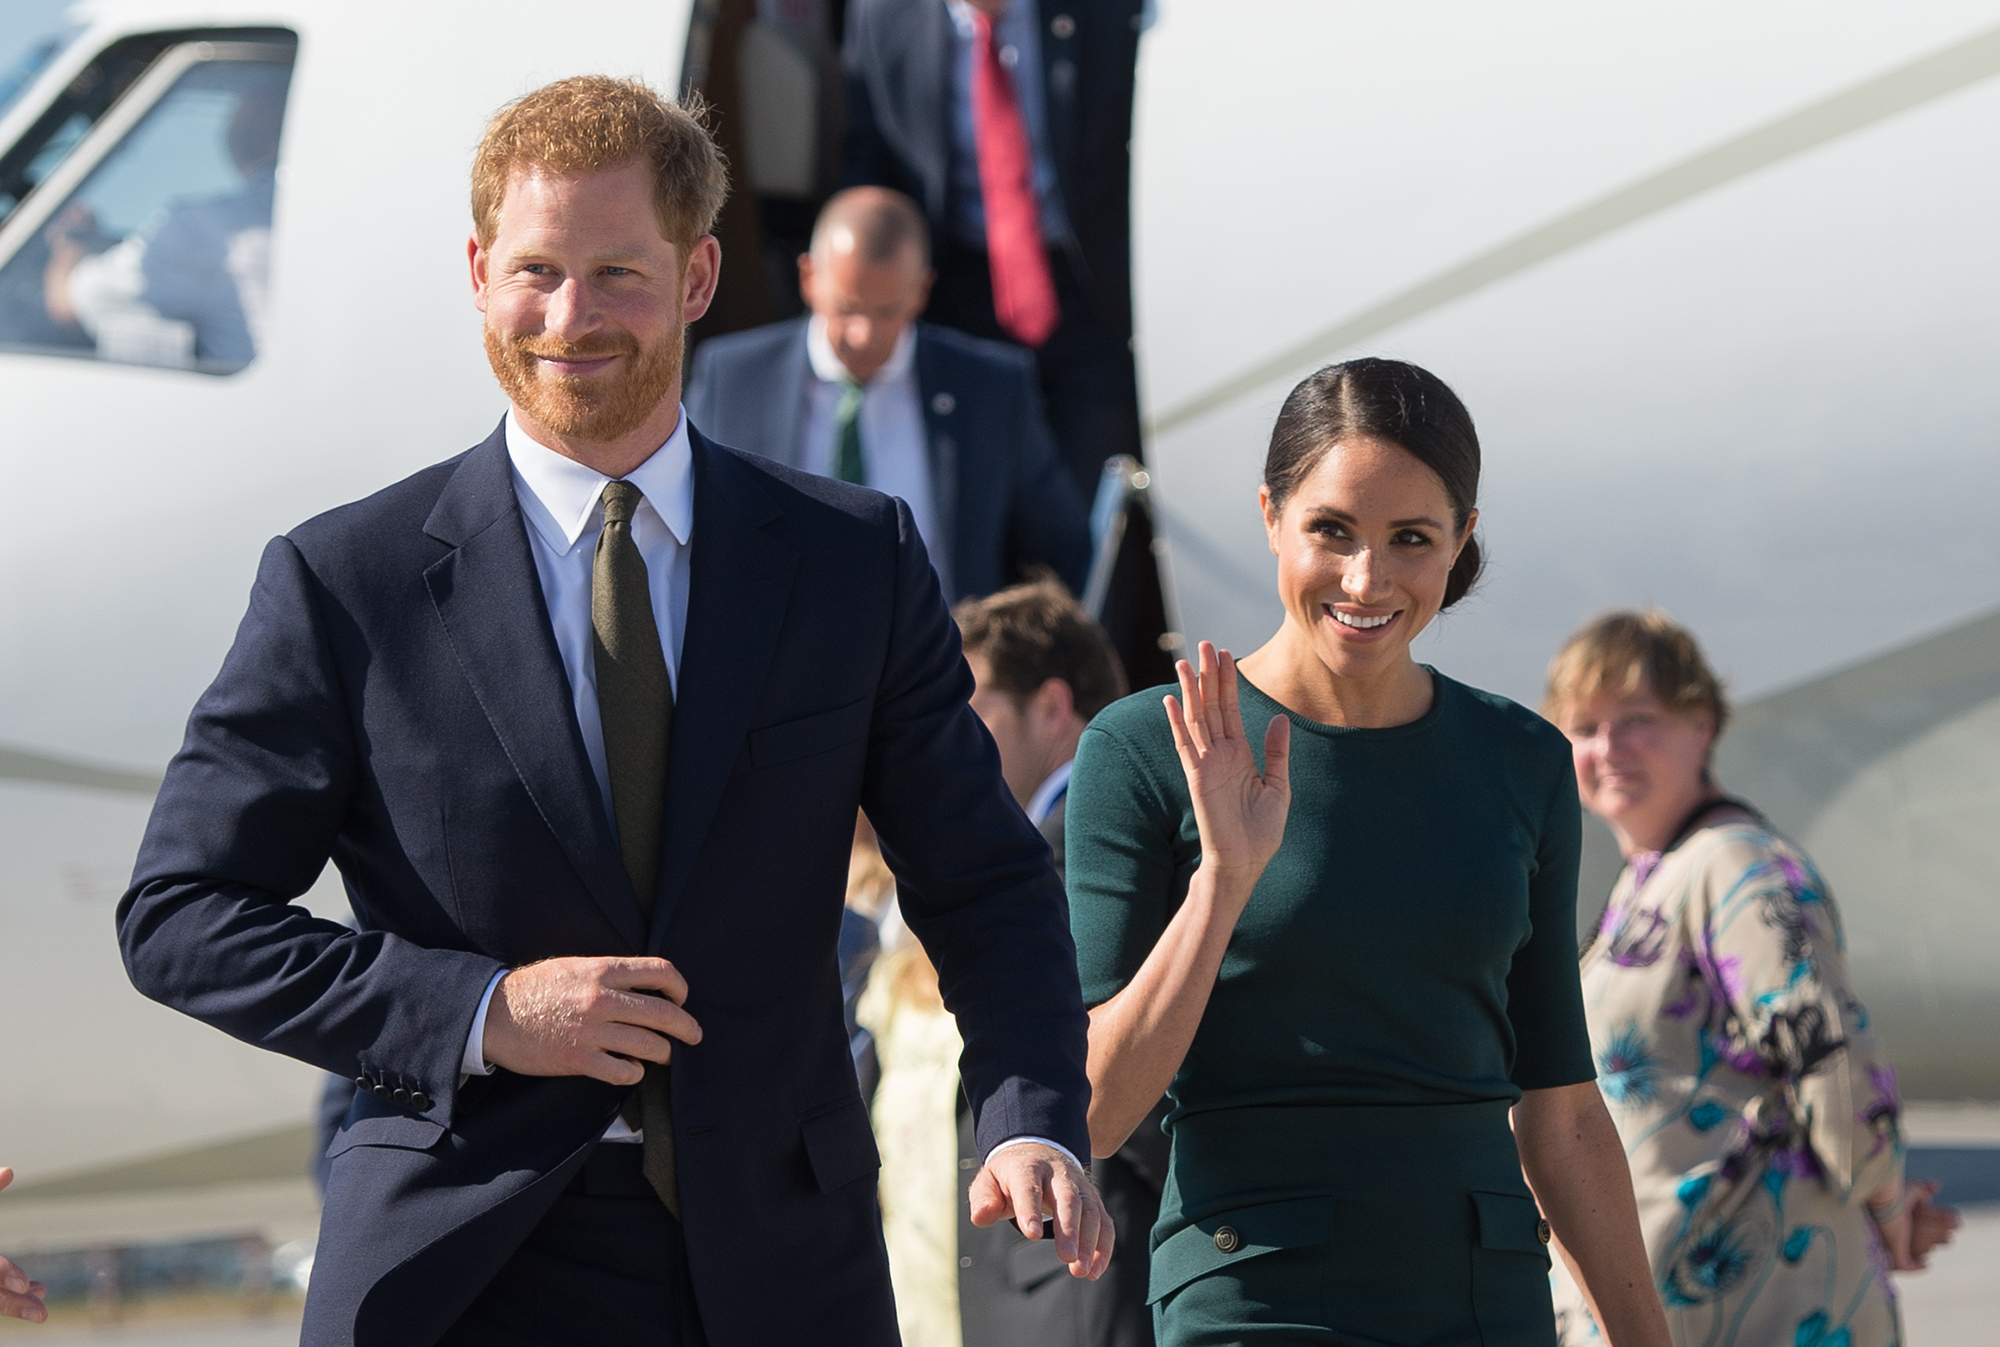 Prince Harry and Duchess Meghan's 1st Year of Marriage - The newlyweds took their first international trip as a married couple to Ireland in July 2018.